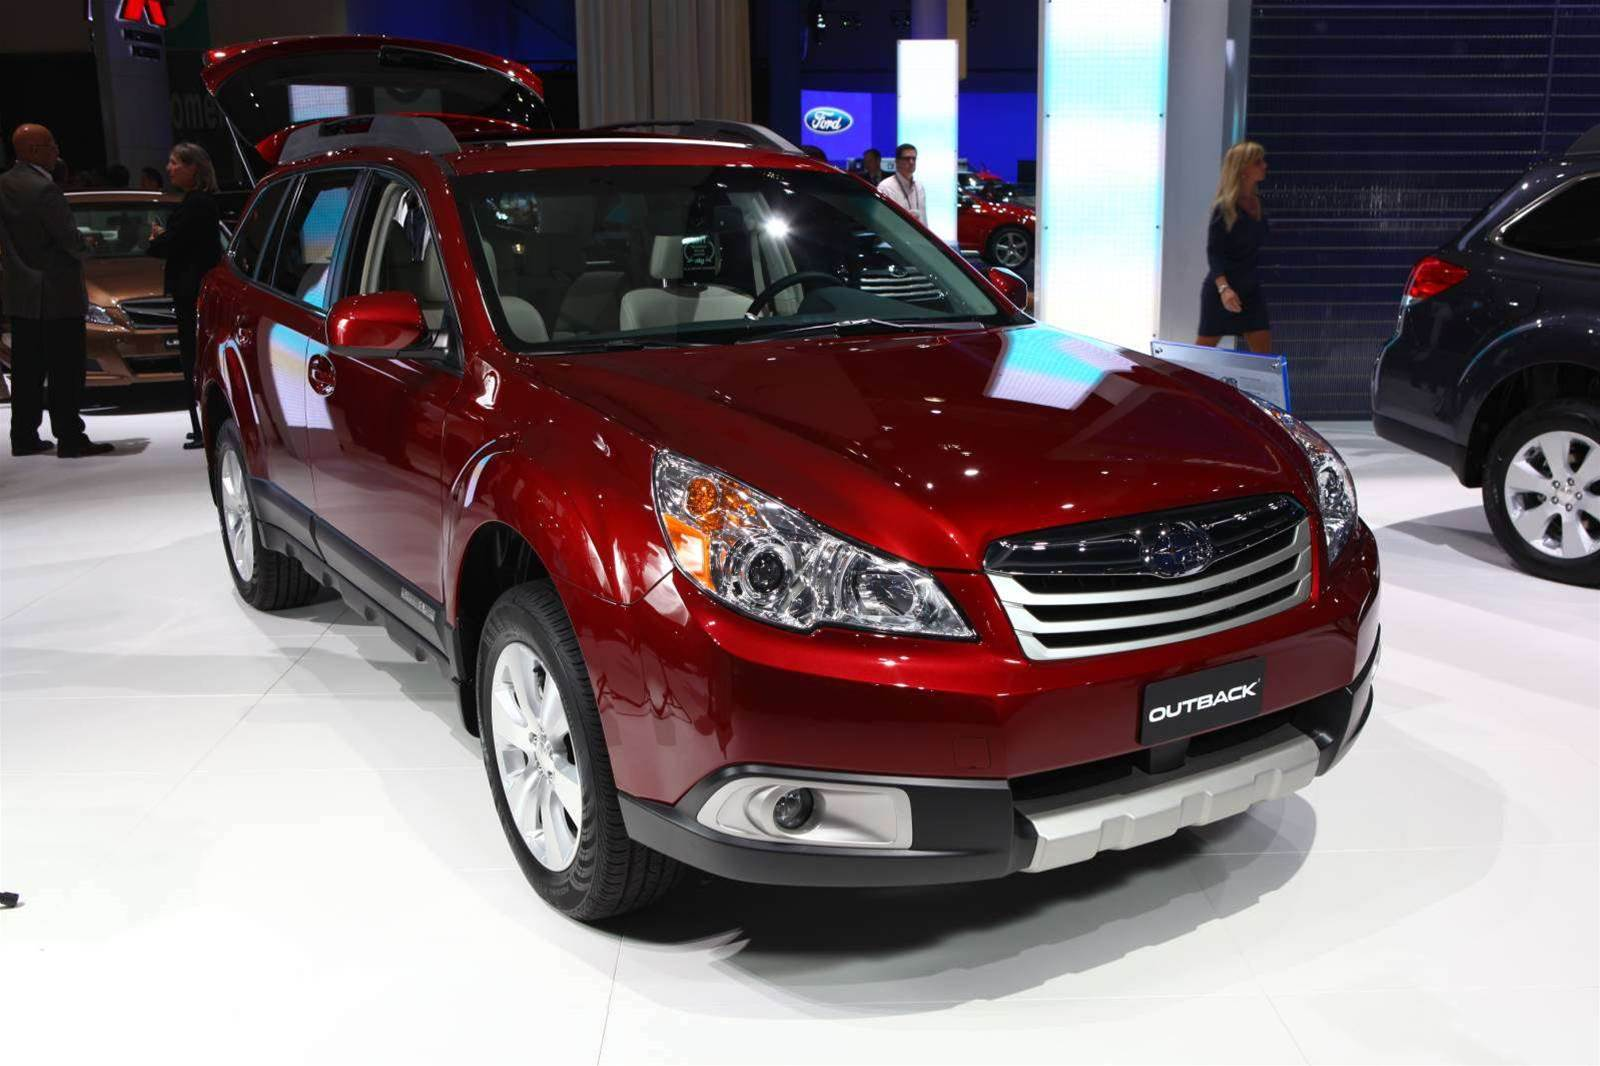 Hackers unlock and start Subaru Outback